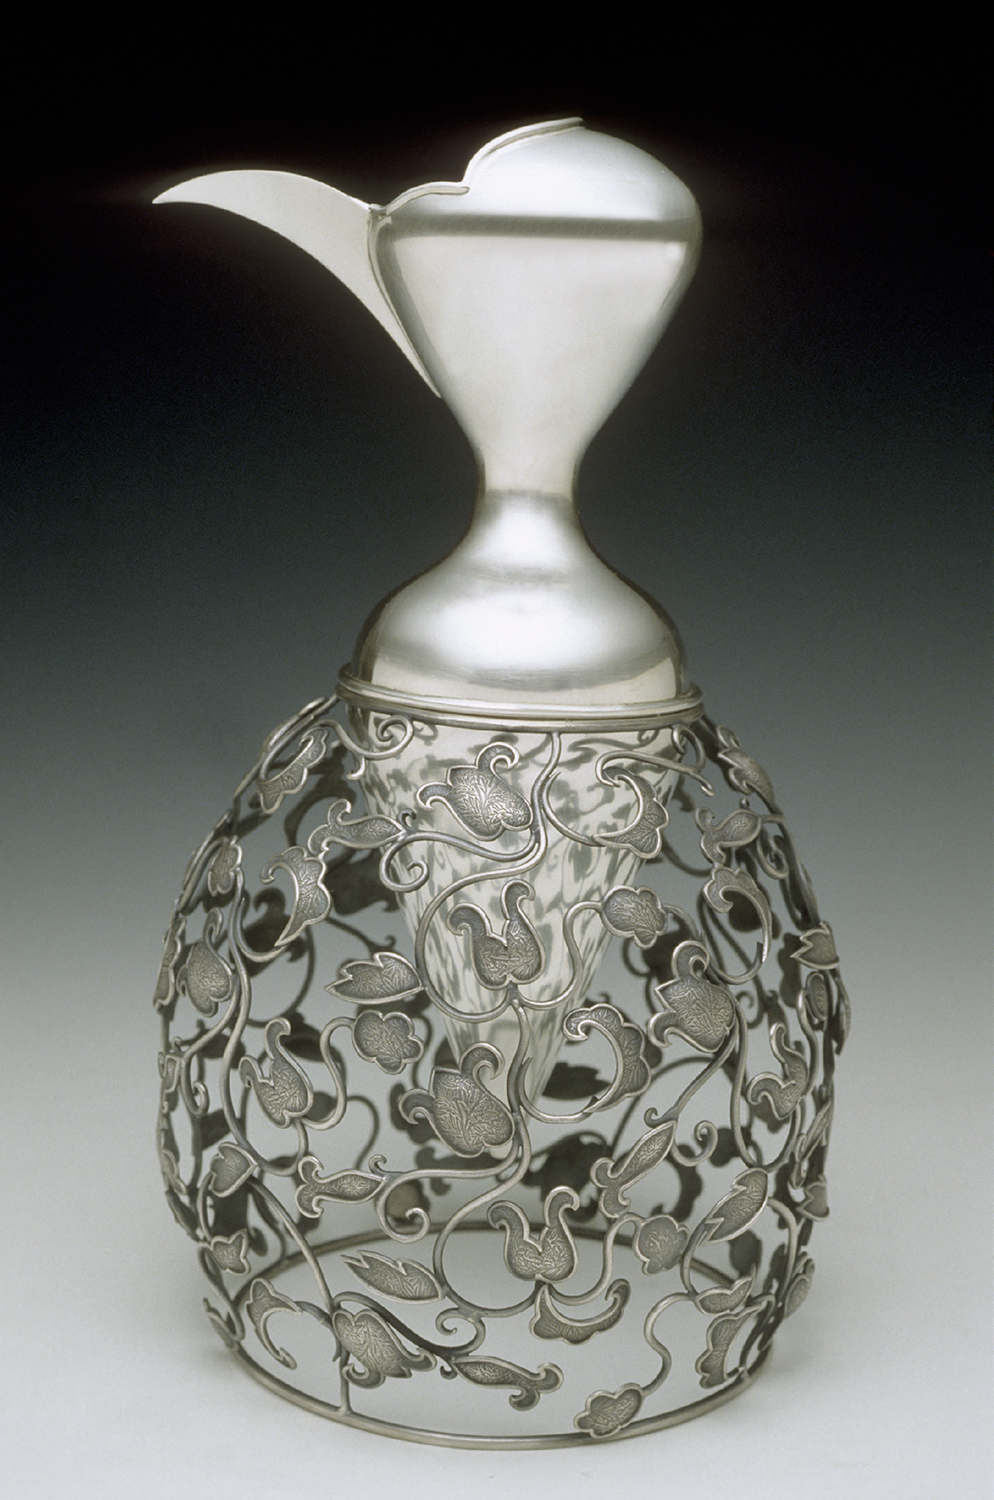 Decanter  | 2002   |  sterling silver  |  13 x 7 x 7 inches